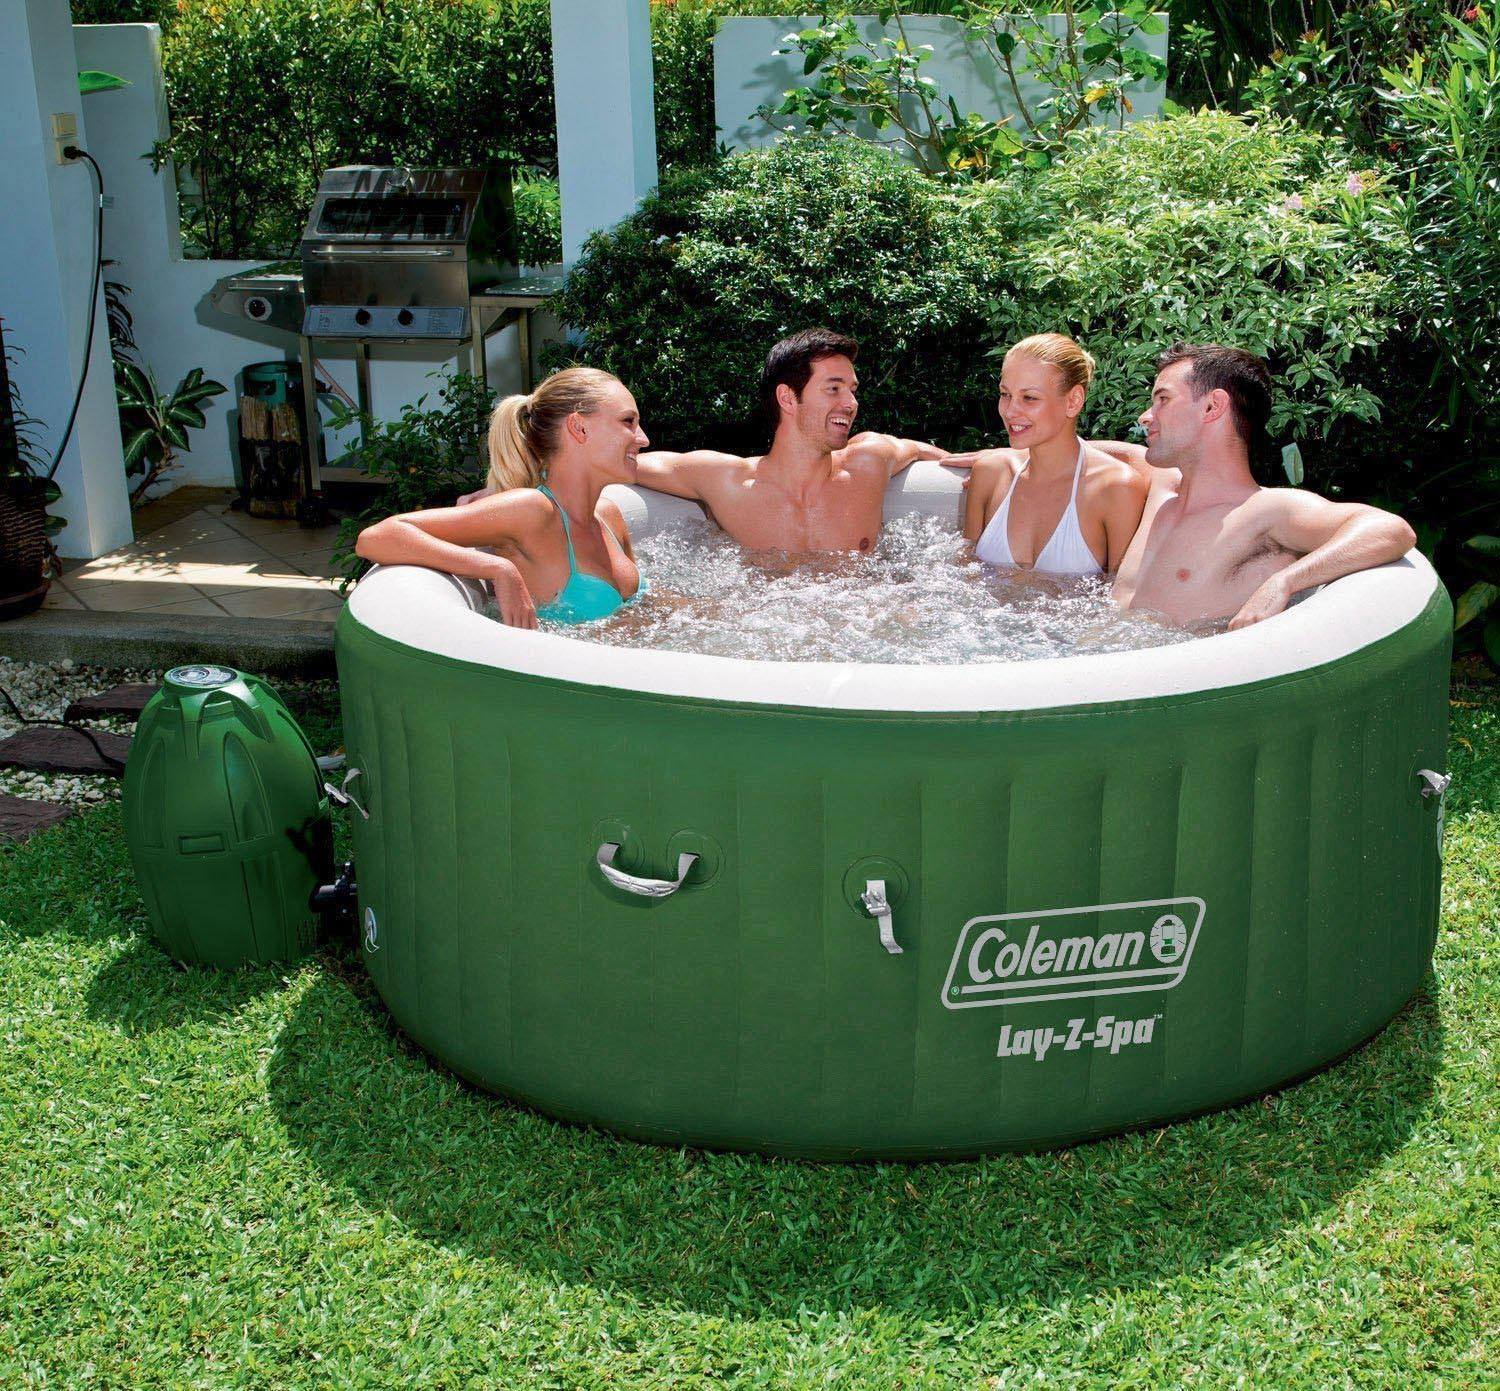 How to Choose and Maintain an Outdoor Hot Tub | Backyard Design Ideas